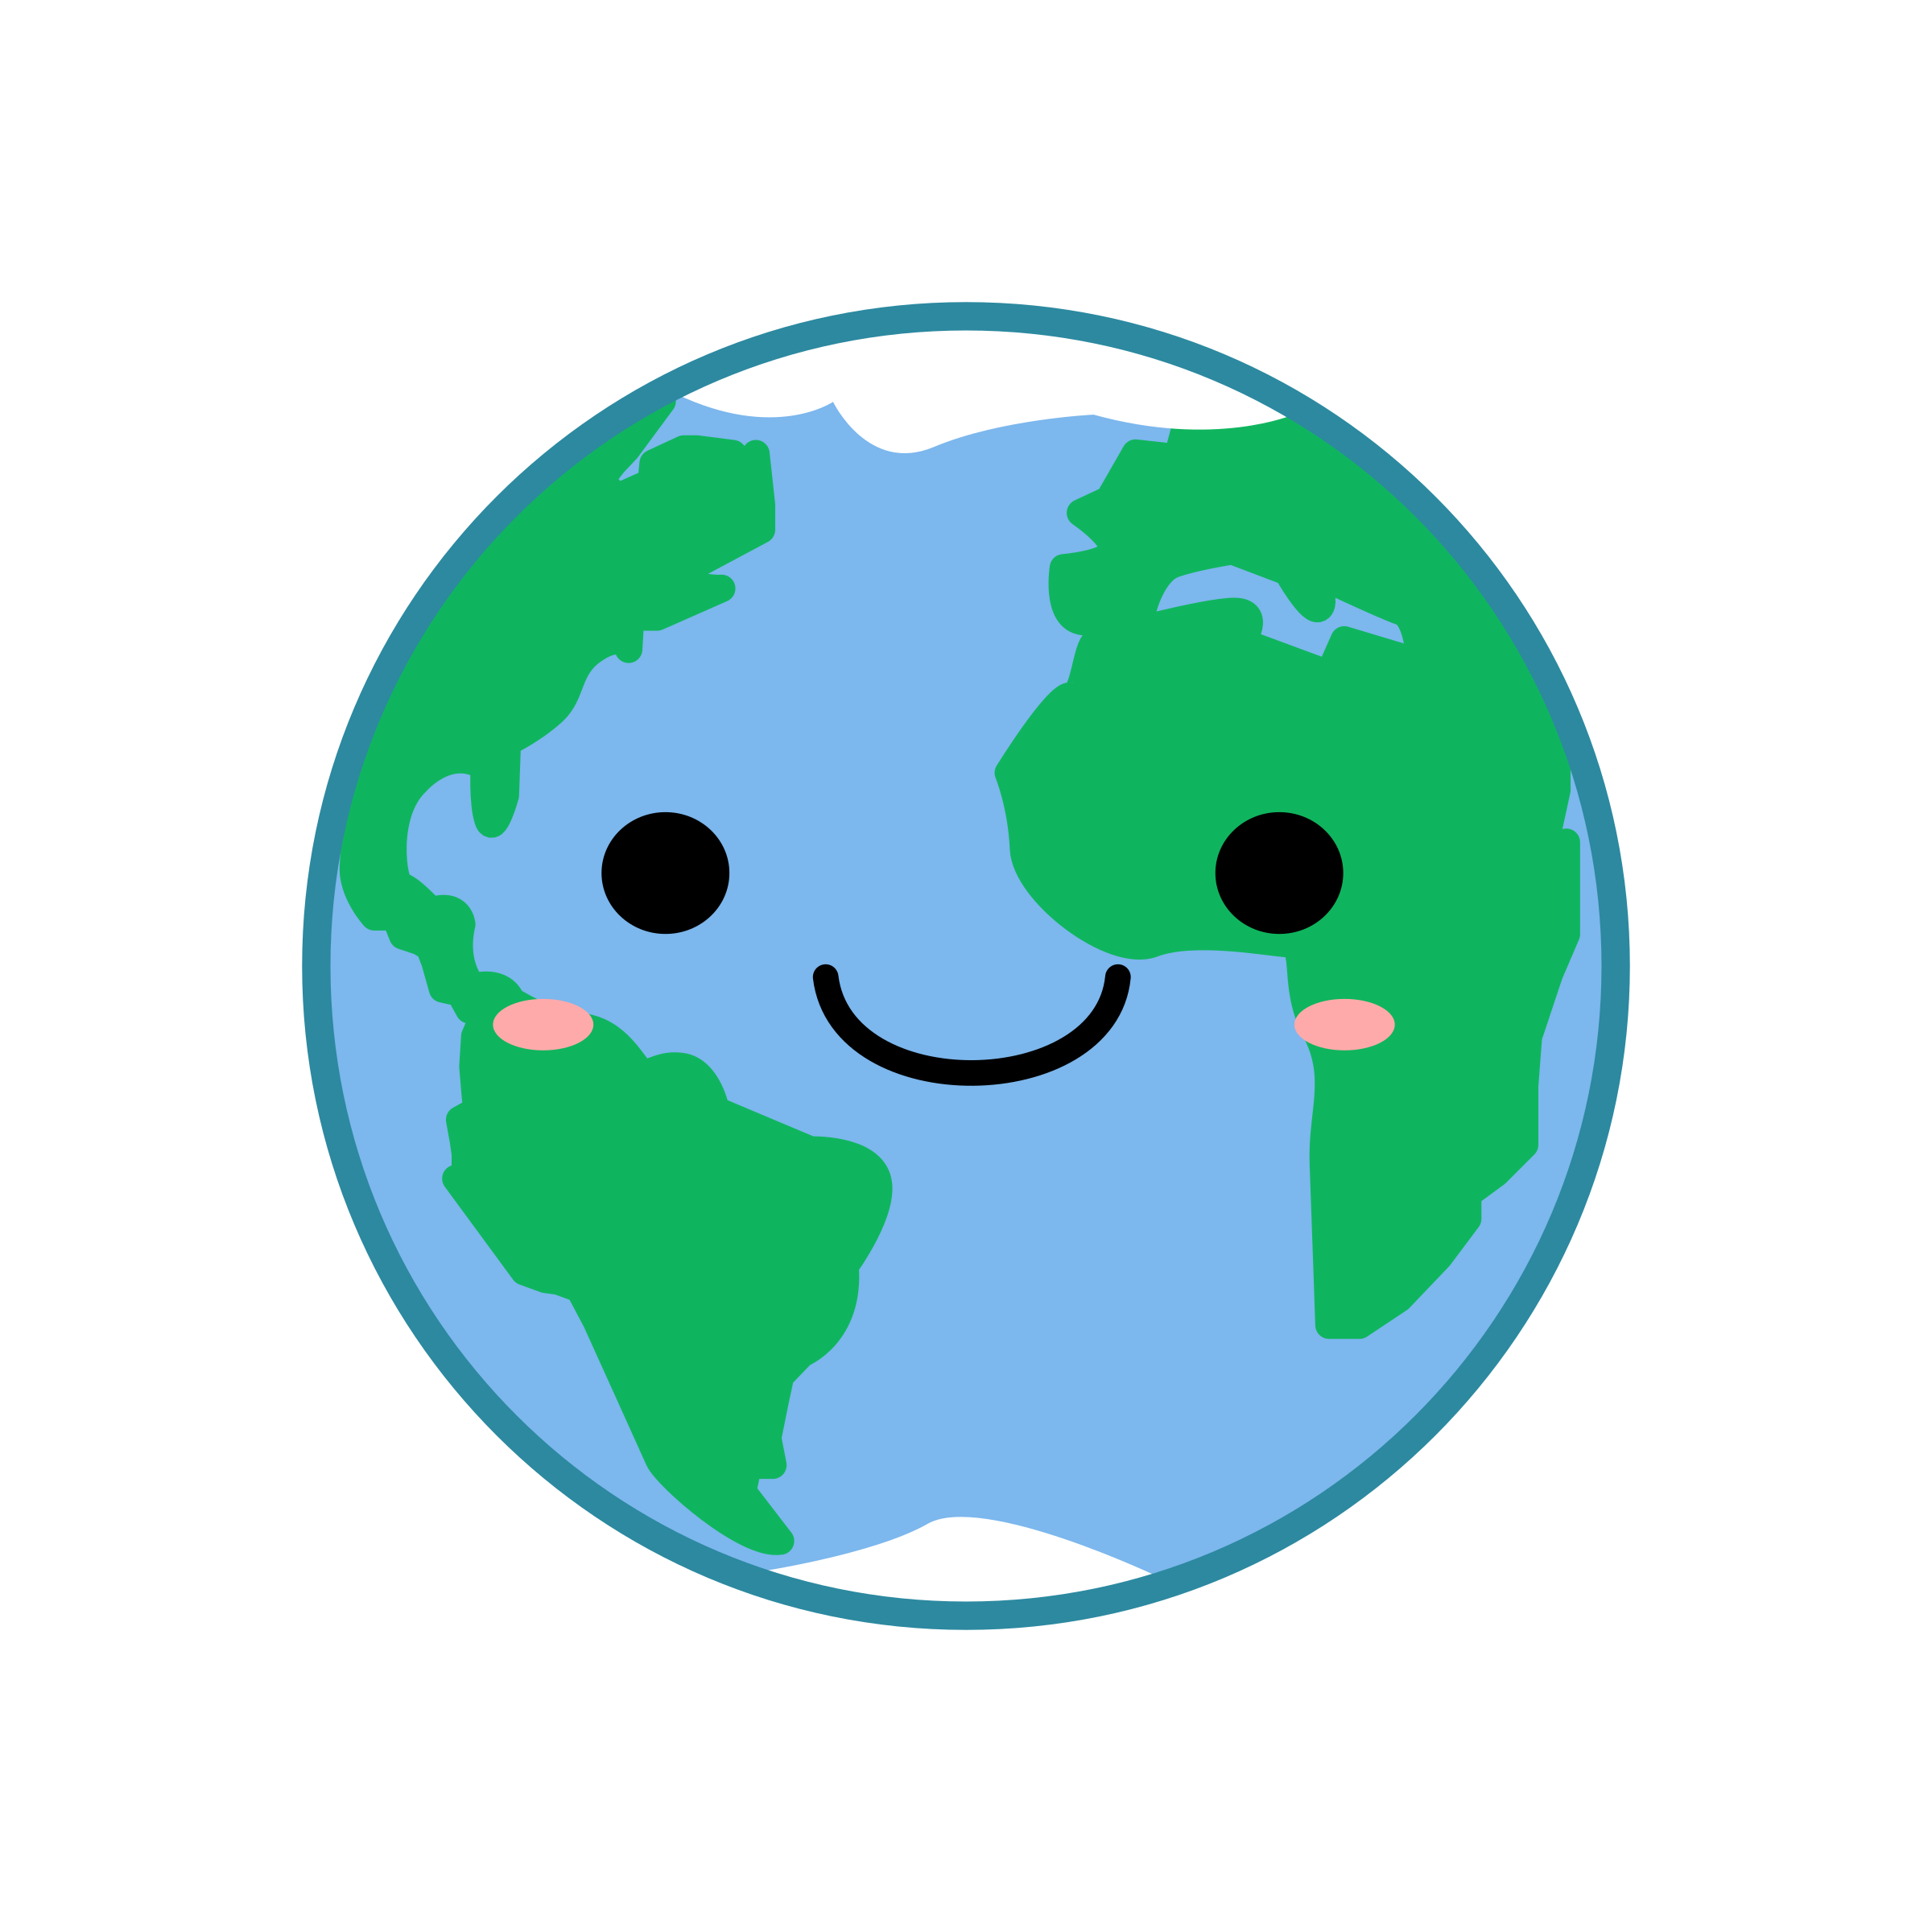 Kawaii earth icons png. Planets clipart animation